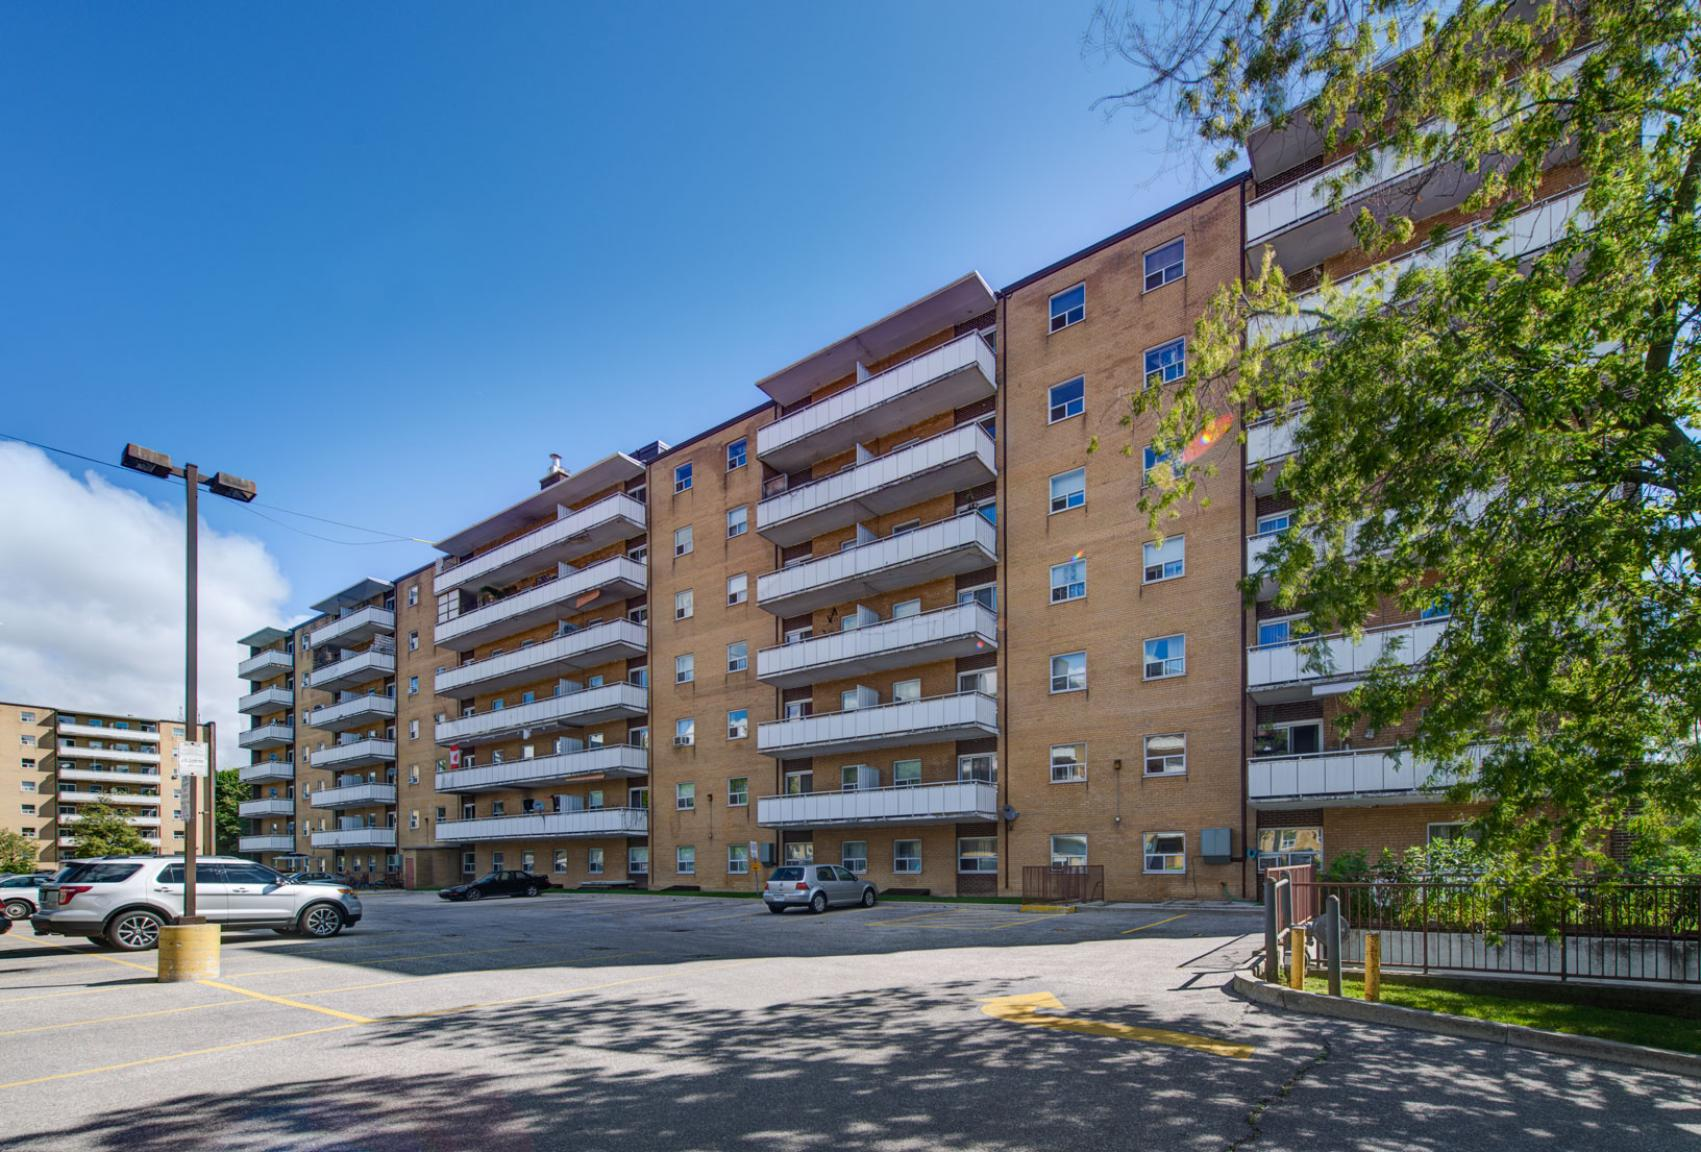 1 bedroom Apartments for rent in Toronto at Lake Promenade Community - Photo 02 - RentersPages – L167085